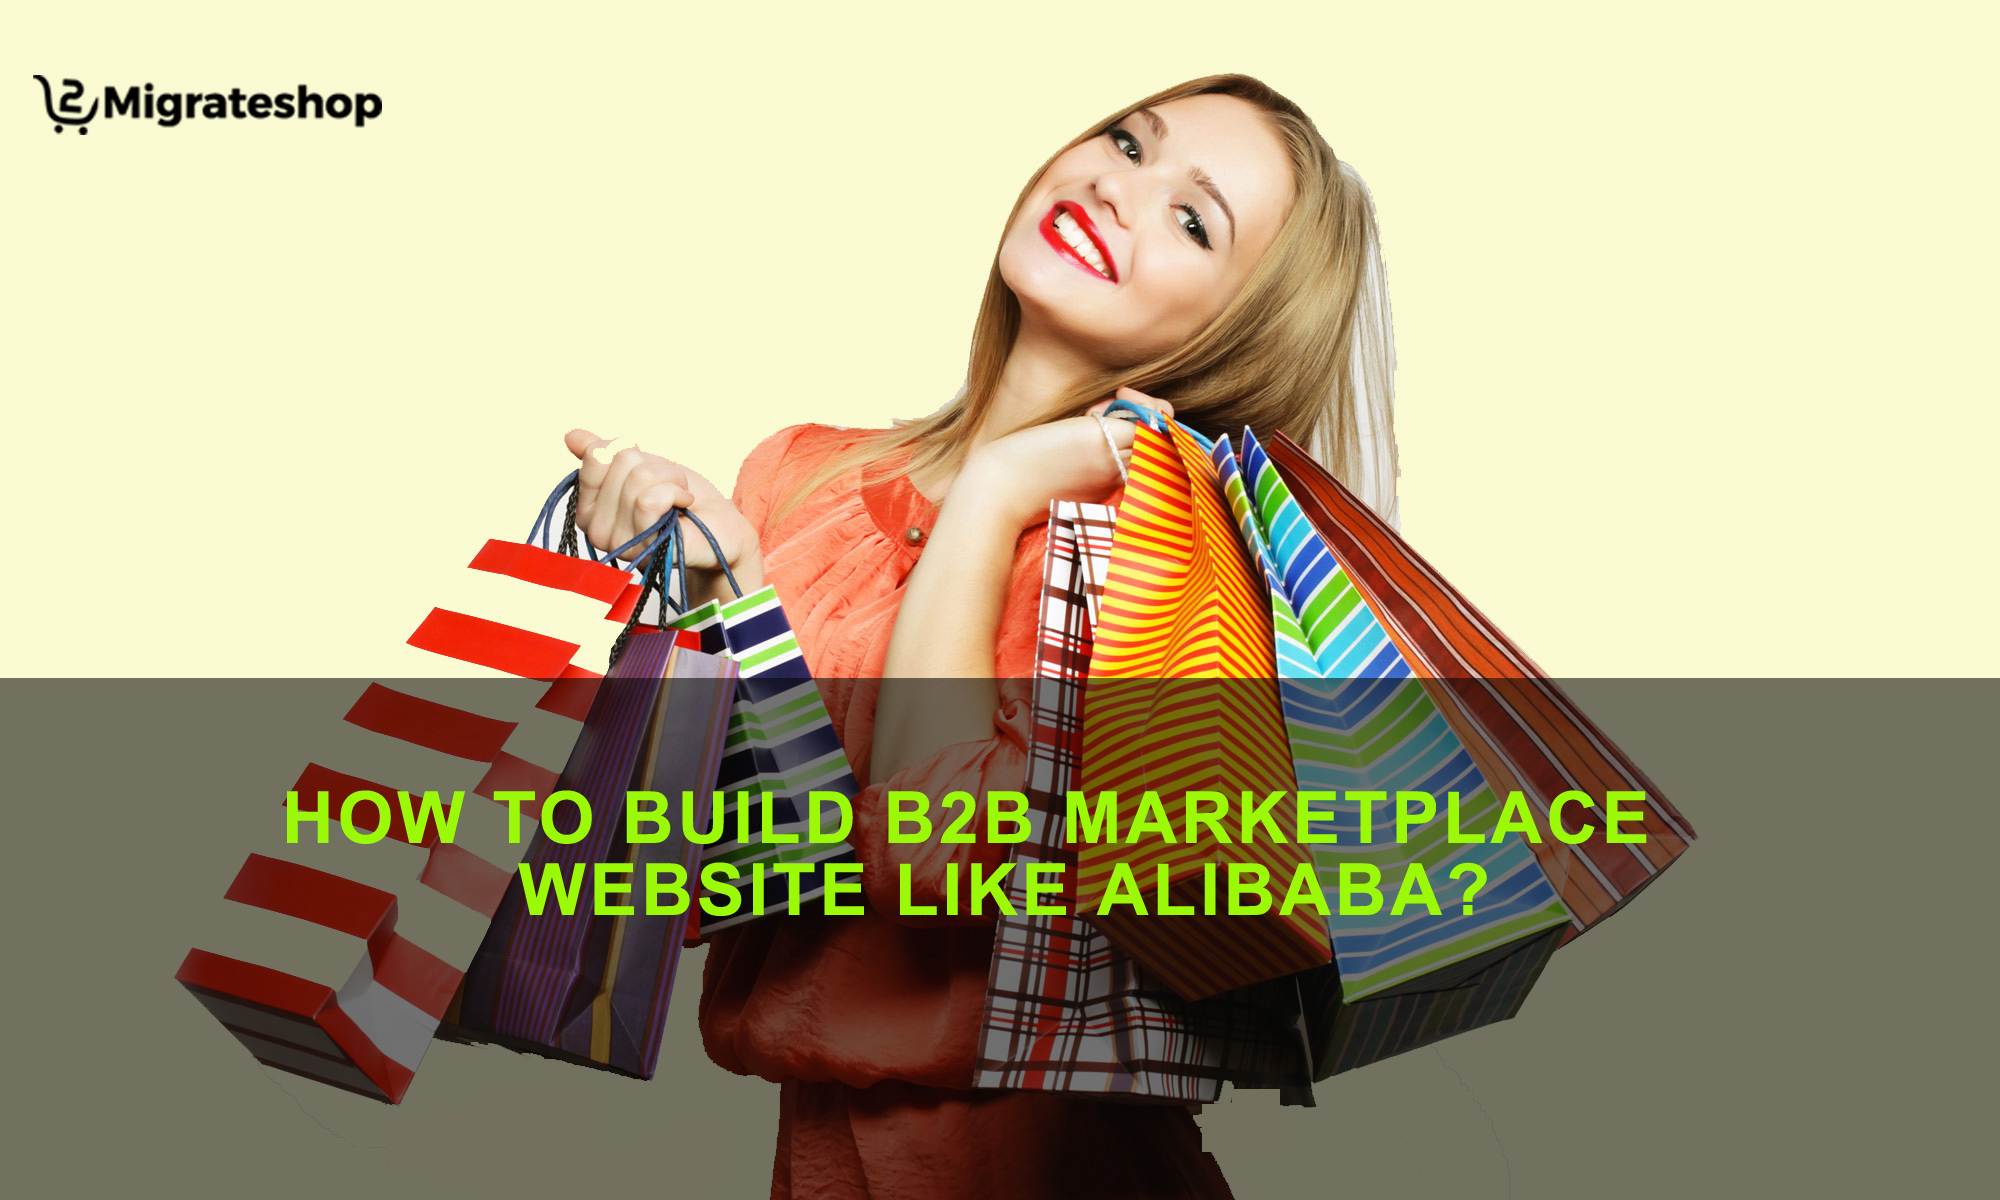 How To Build B2B Marketplace website Like Alibaba?